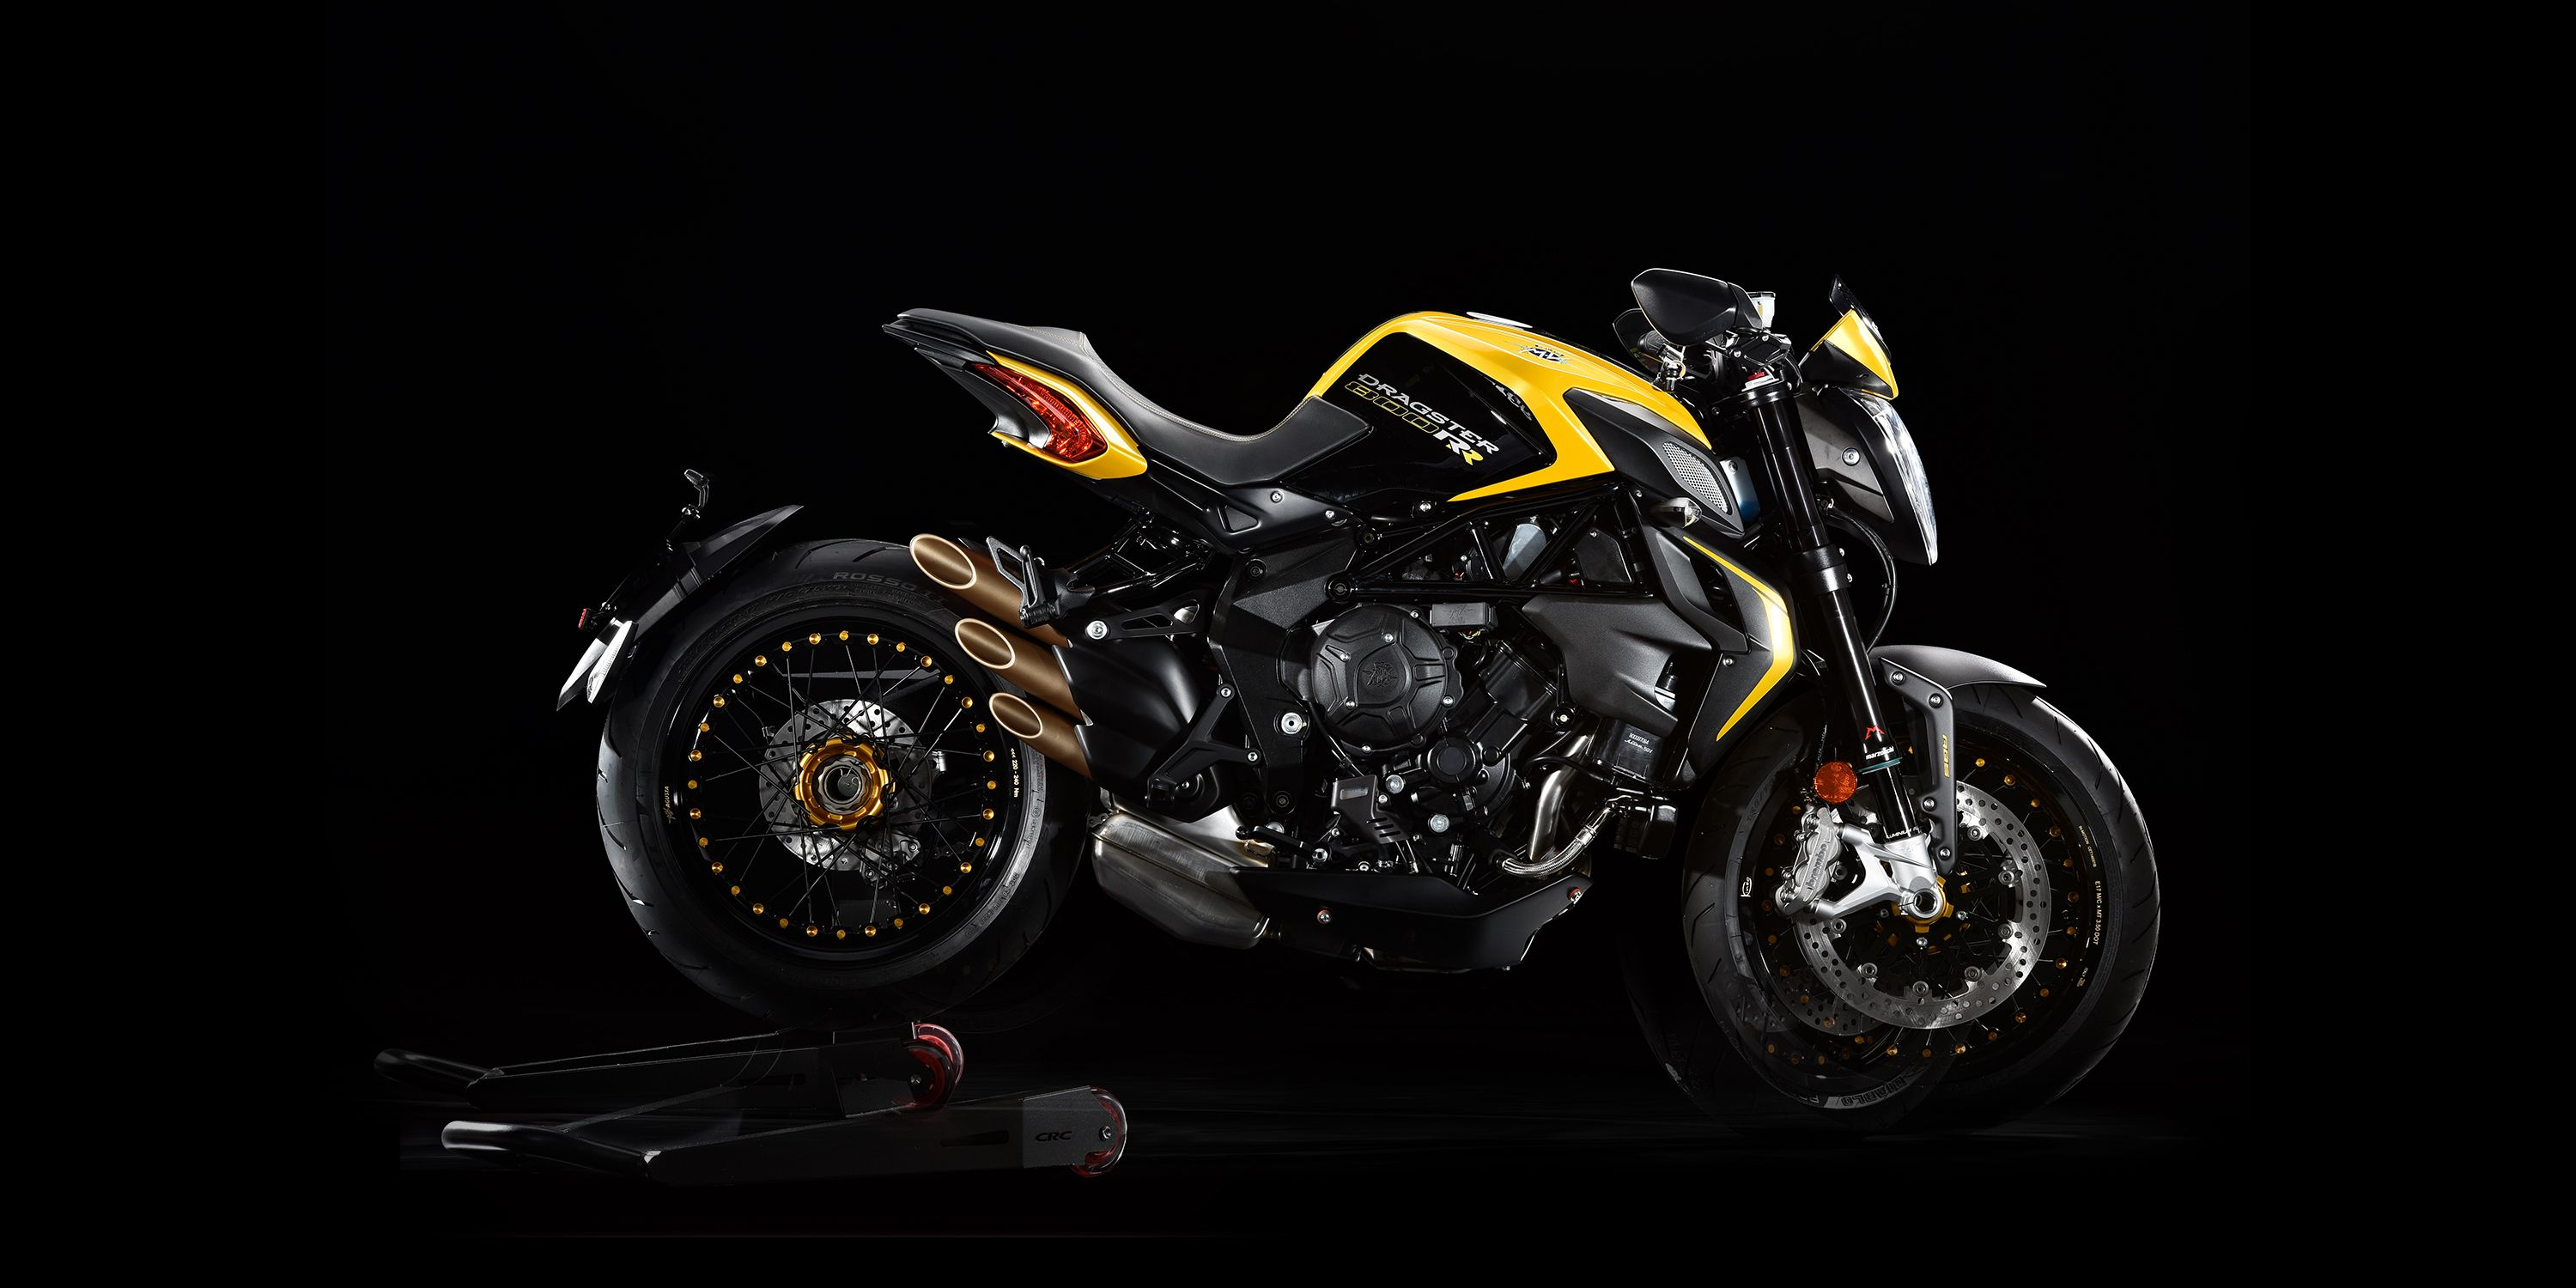 brutale 800 dragster rr motorcycle | mv agusta yellow/black | moto